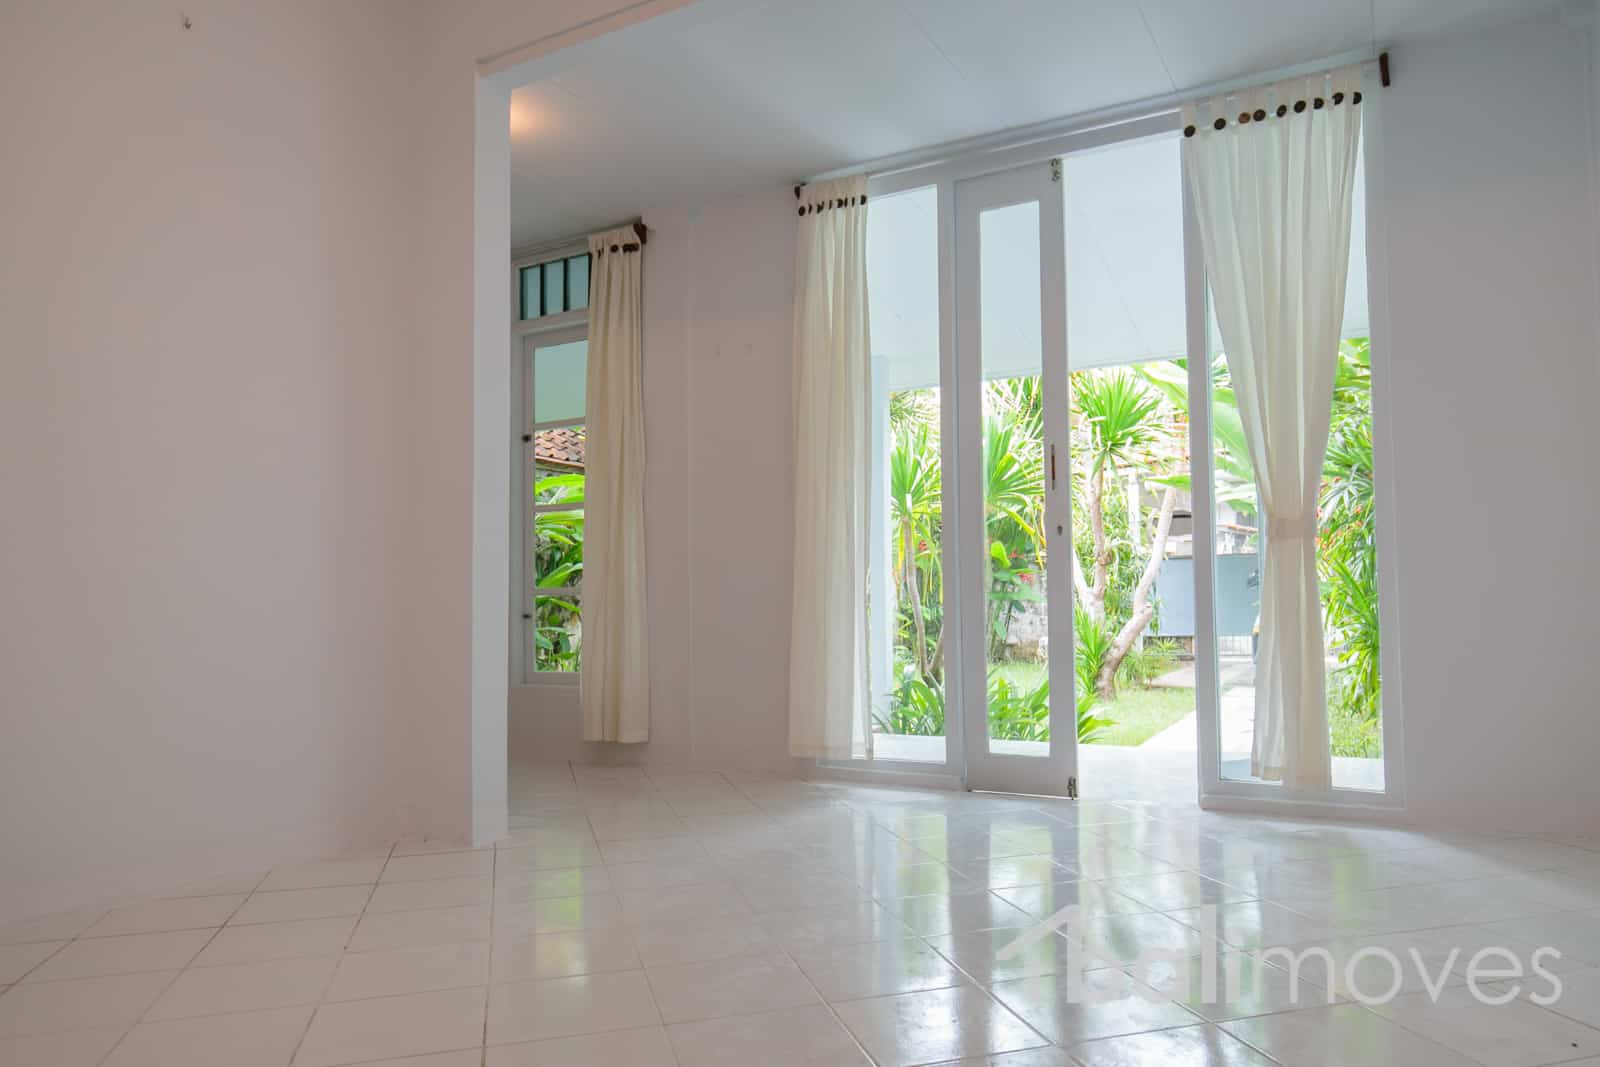 One bedroom house rent sanur b1806 14